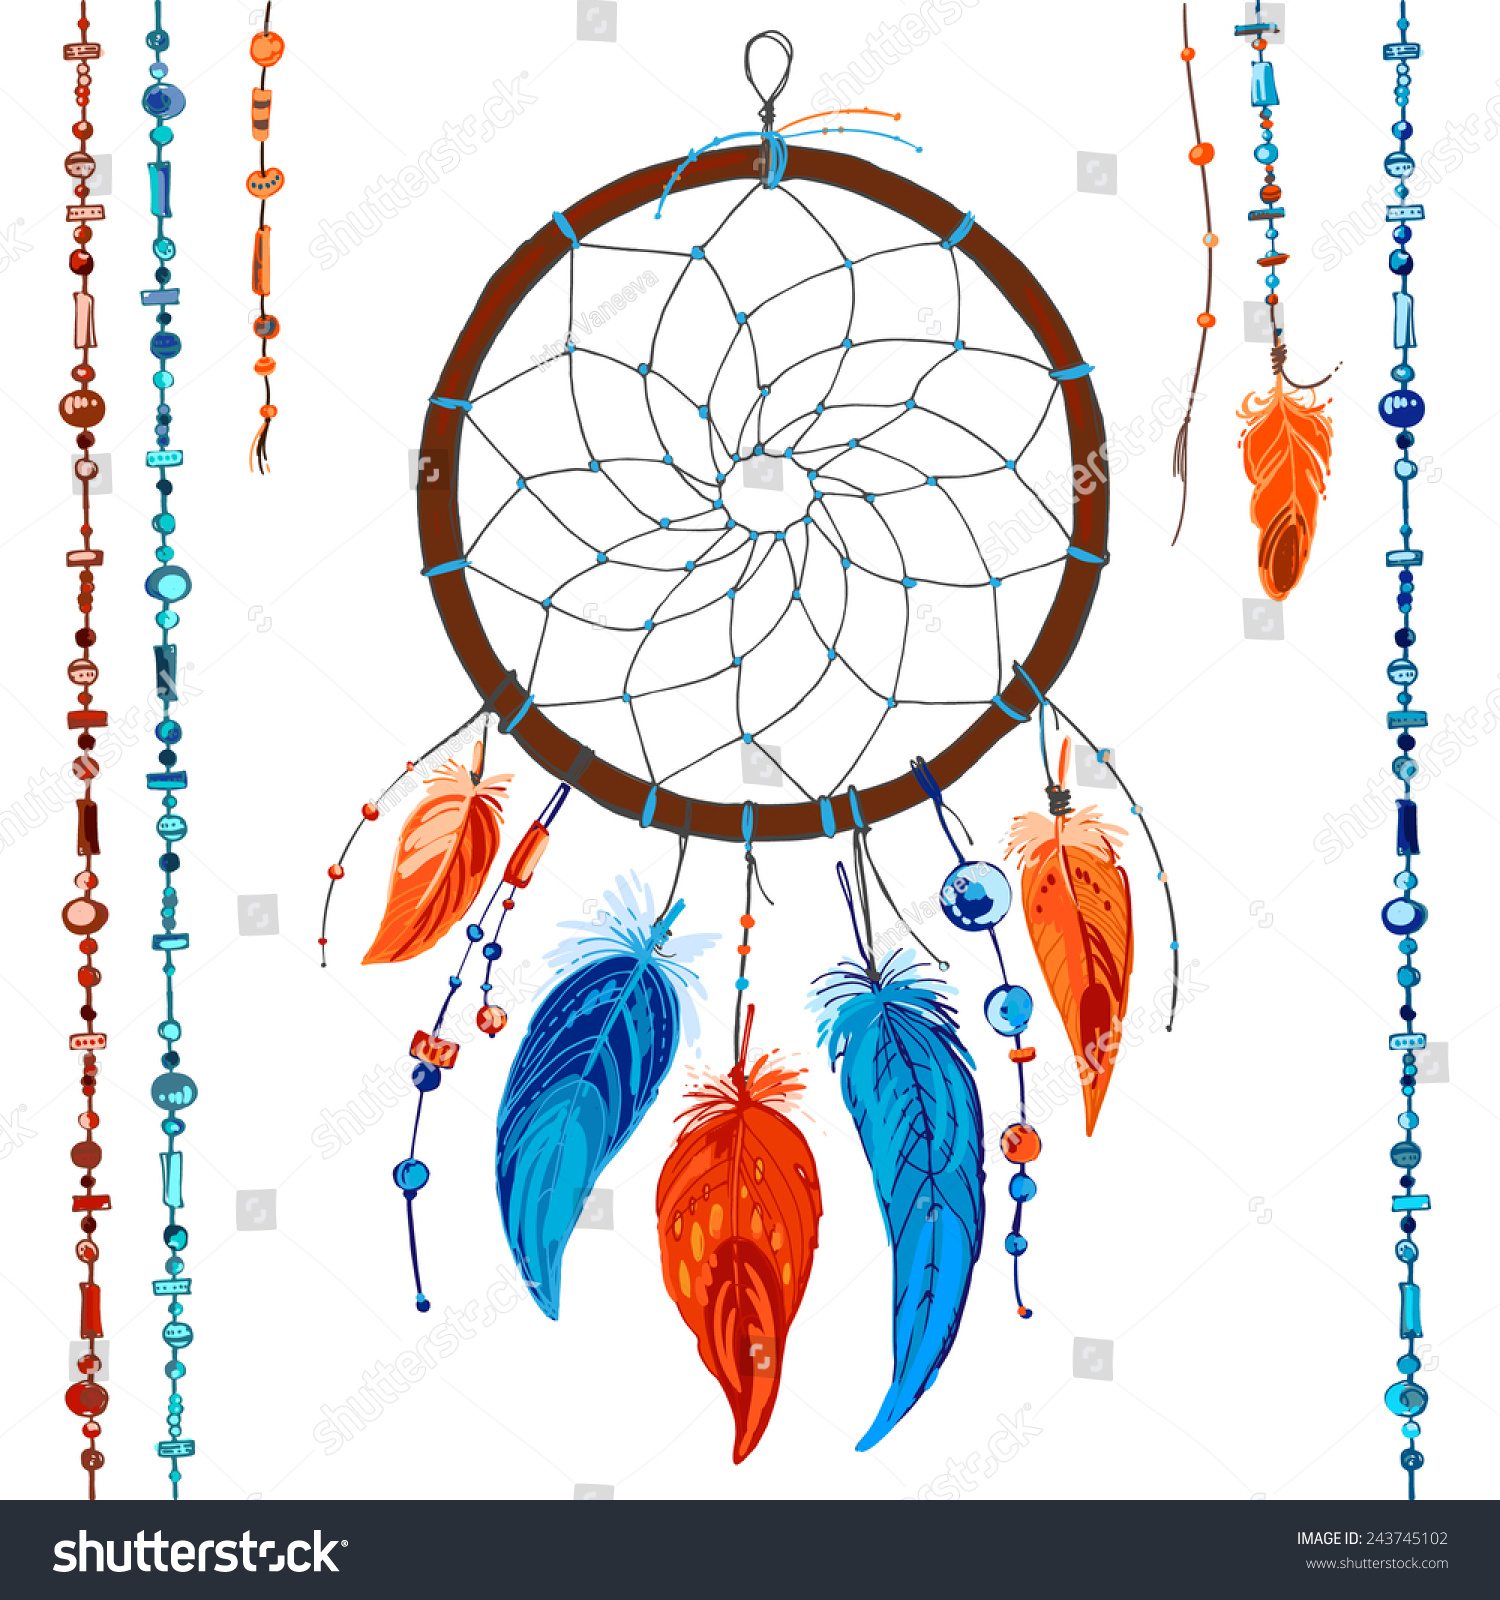 dreamcatcher feathers and beads native american indian dream catcher traditional symbol color